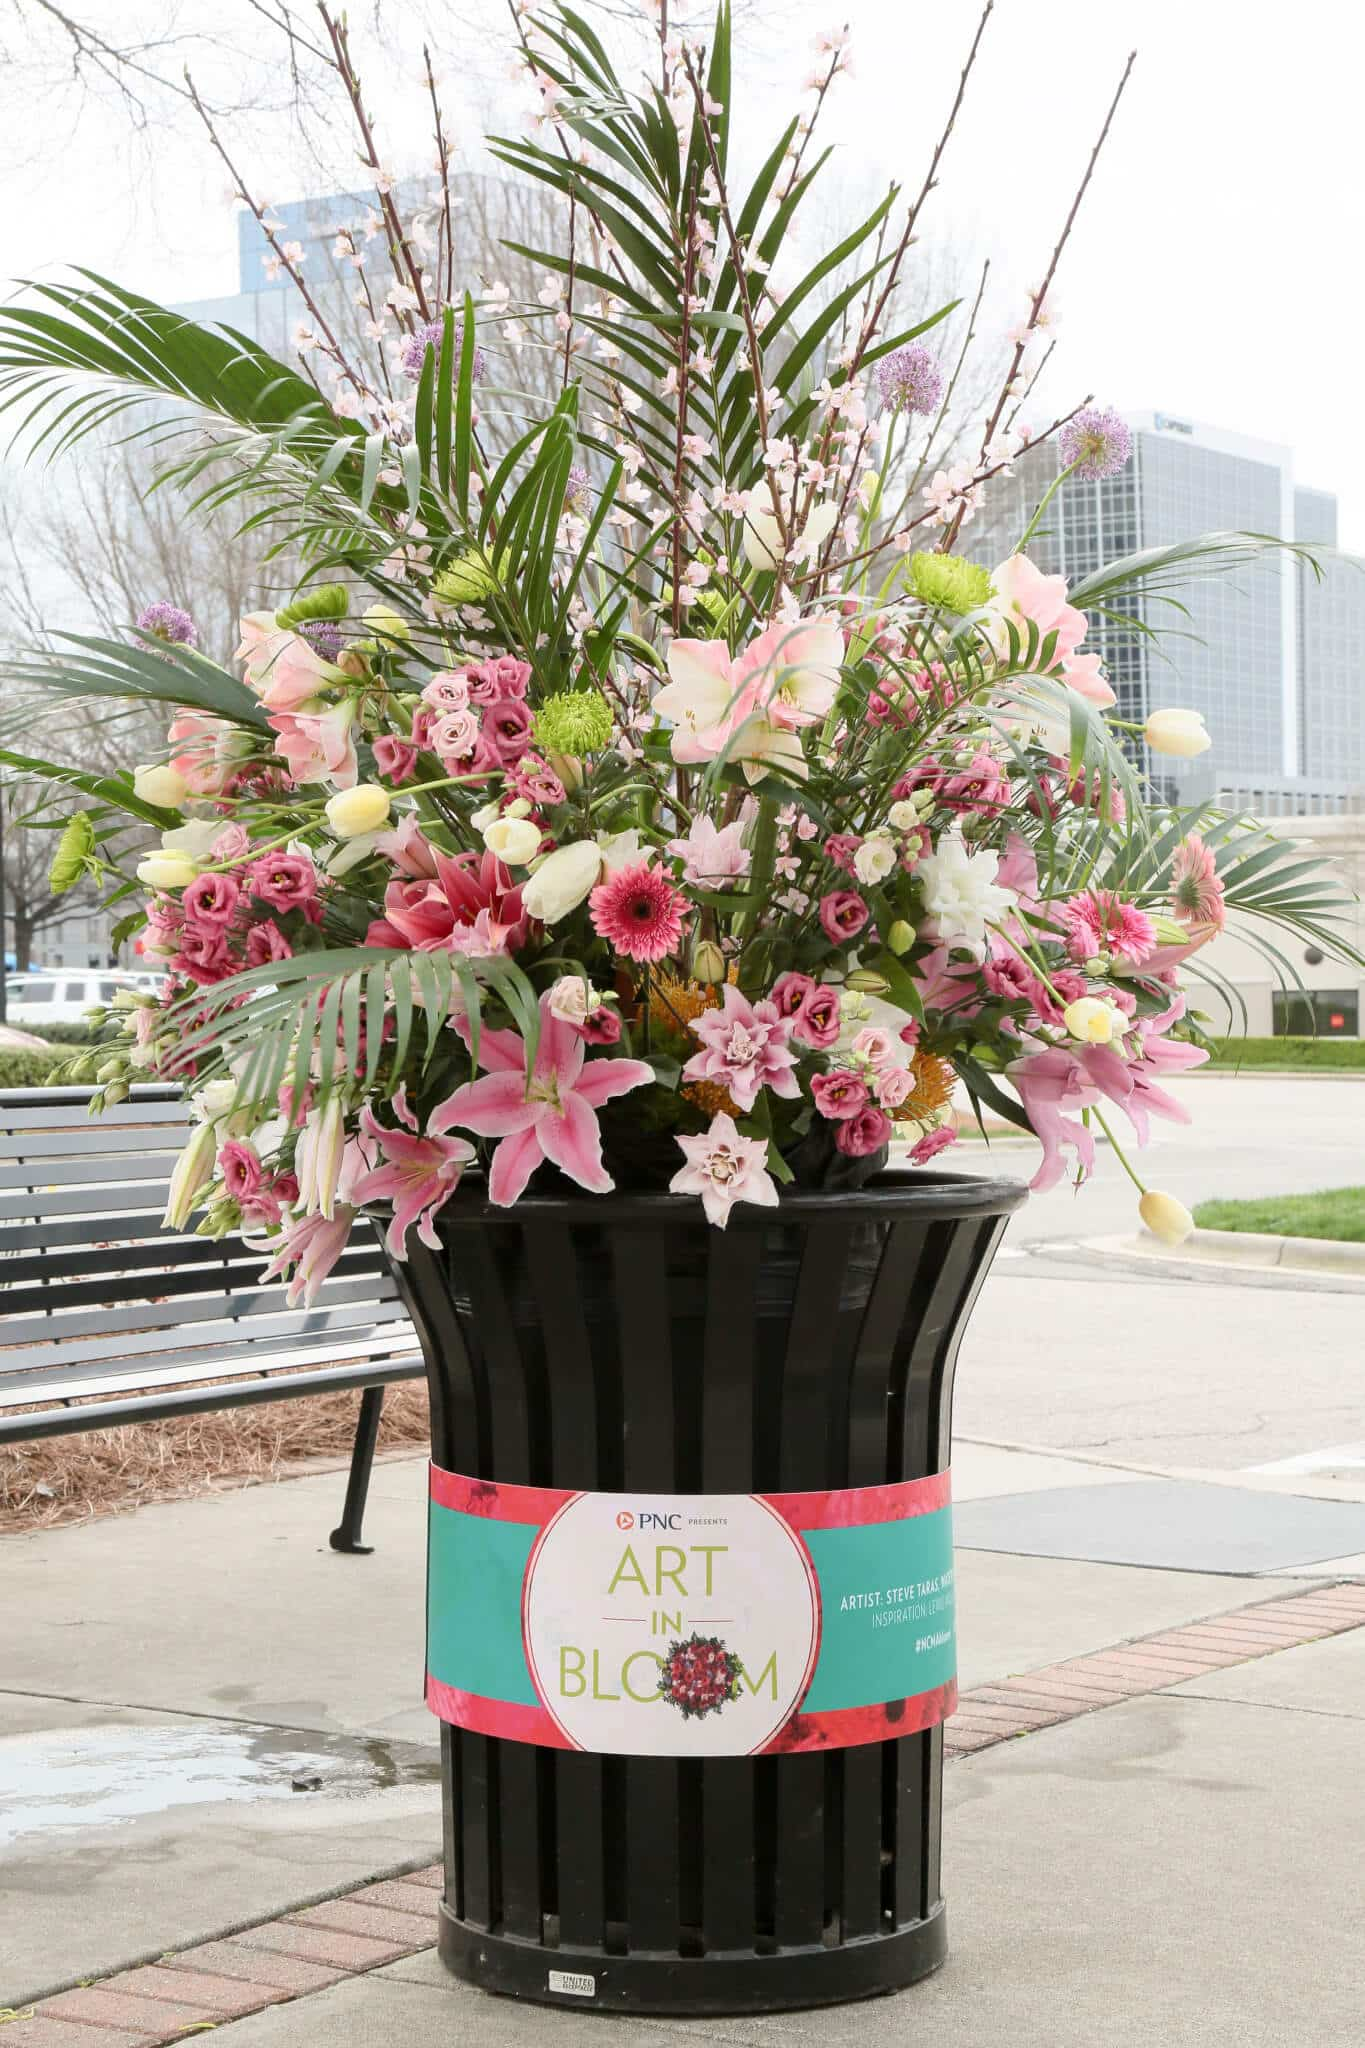 Pink trashcan bouquet in North Hills for NMCA Art In Bloom